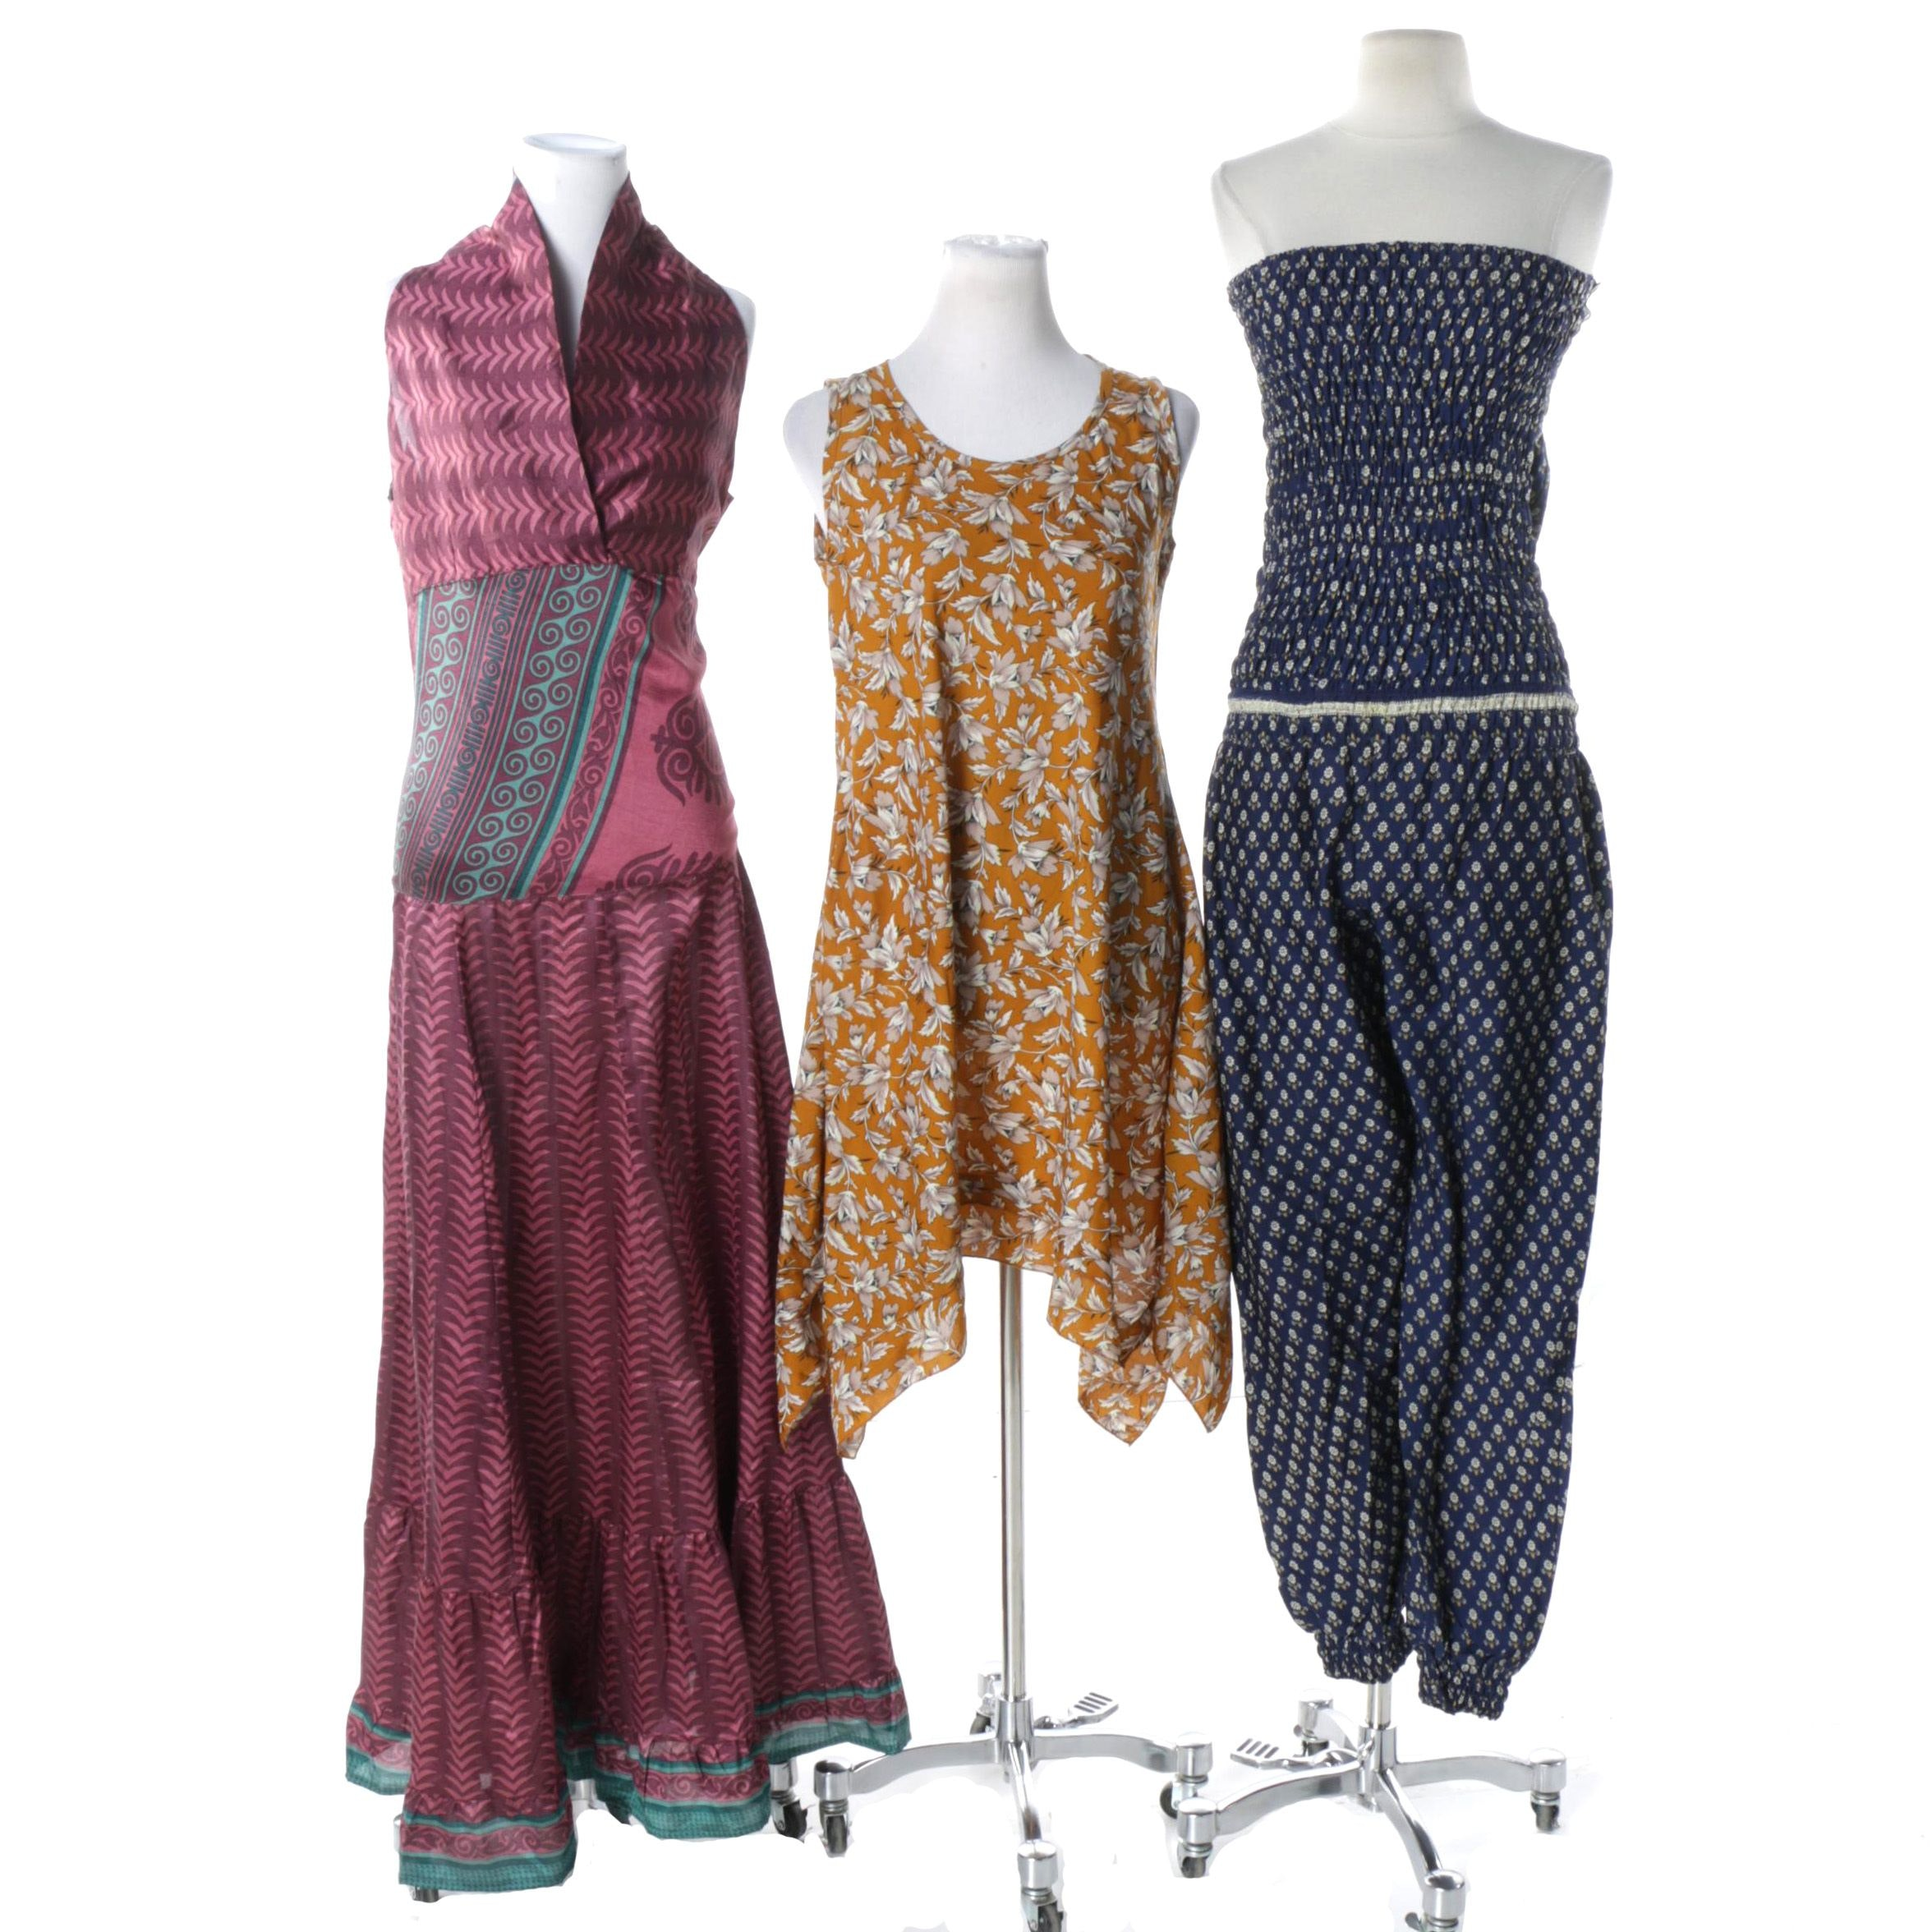 Aller Simplement One of a Kind Vintage Sari Maxi Dress, Tunic and Jumpsuit